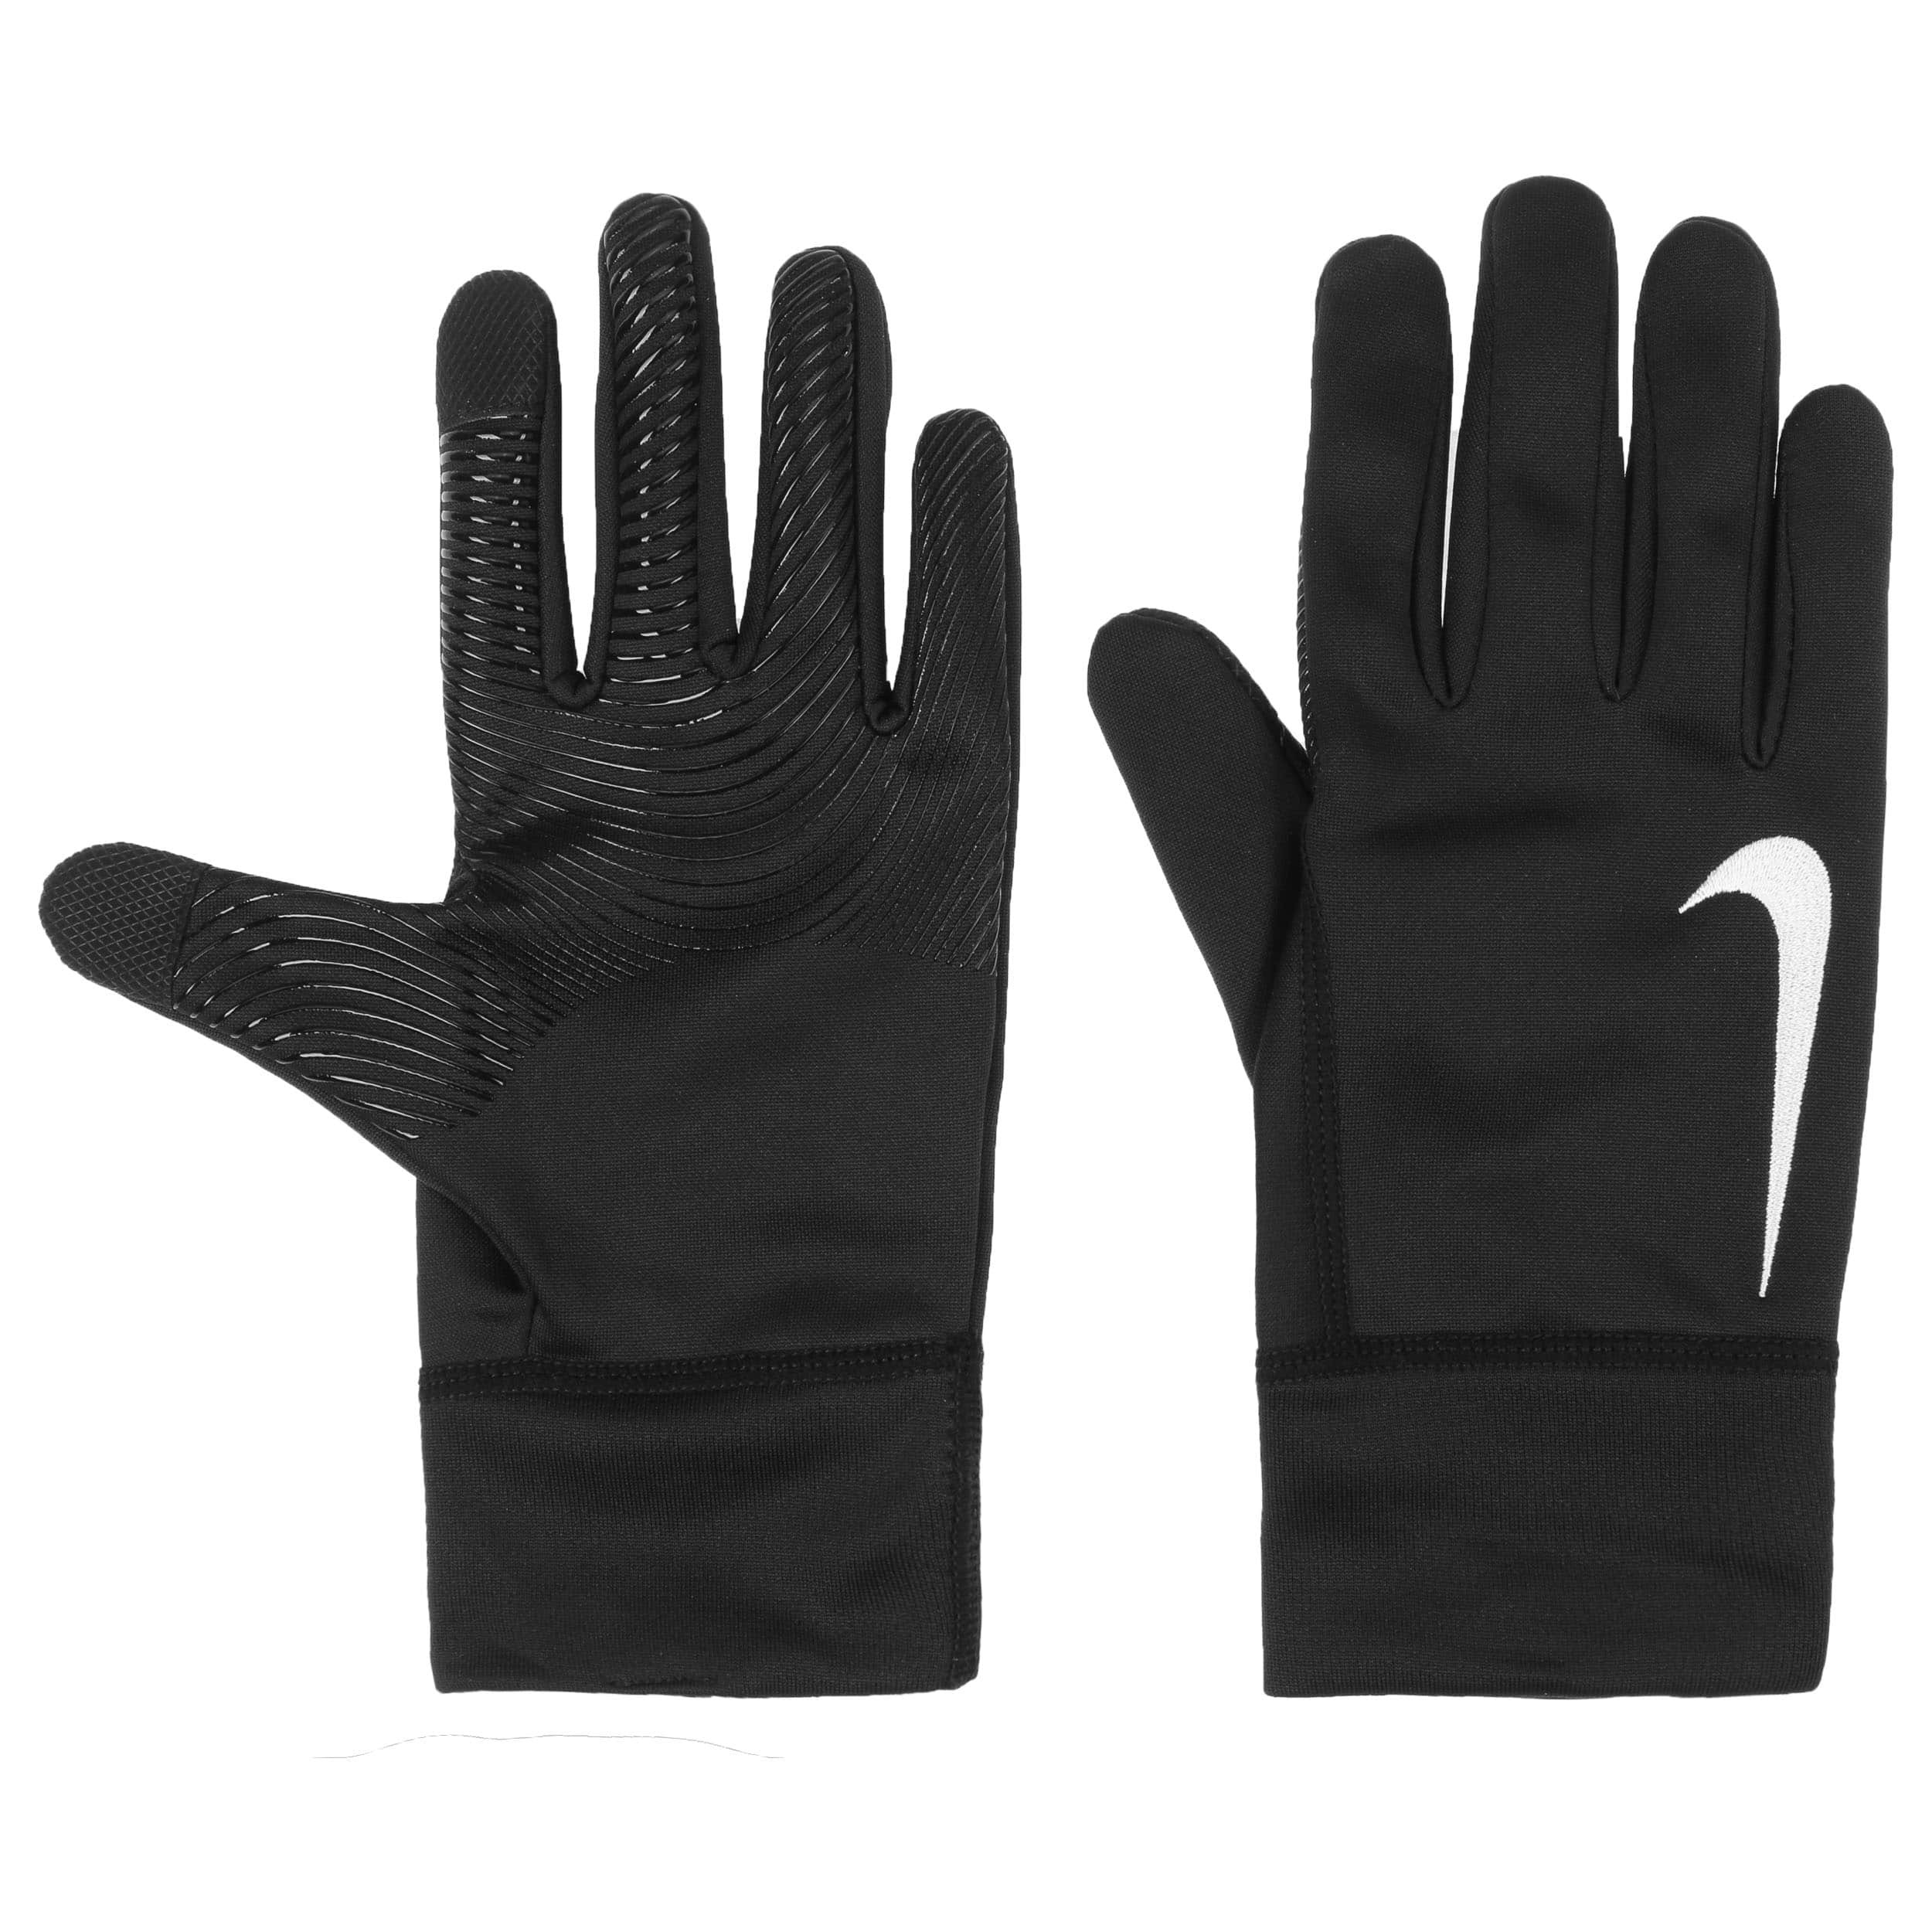 Nike Gloves Touch Screen: Therma Touchscreen Gloves By Nike, EUR 39,95 --> Hats